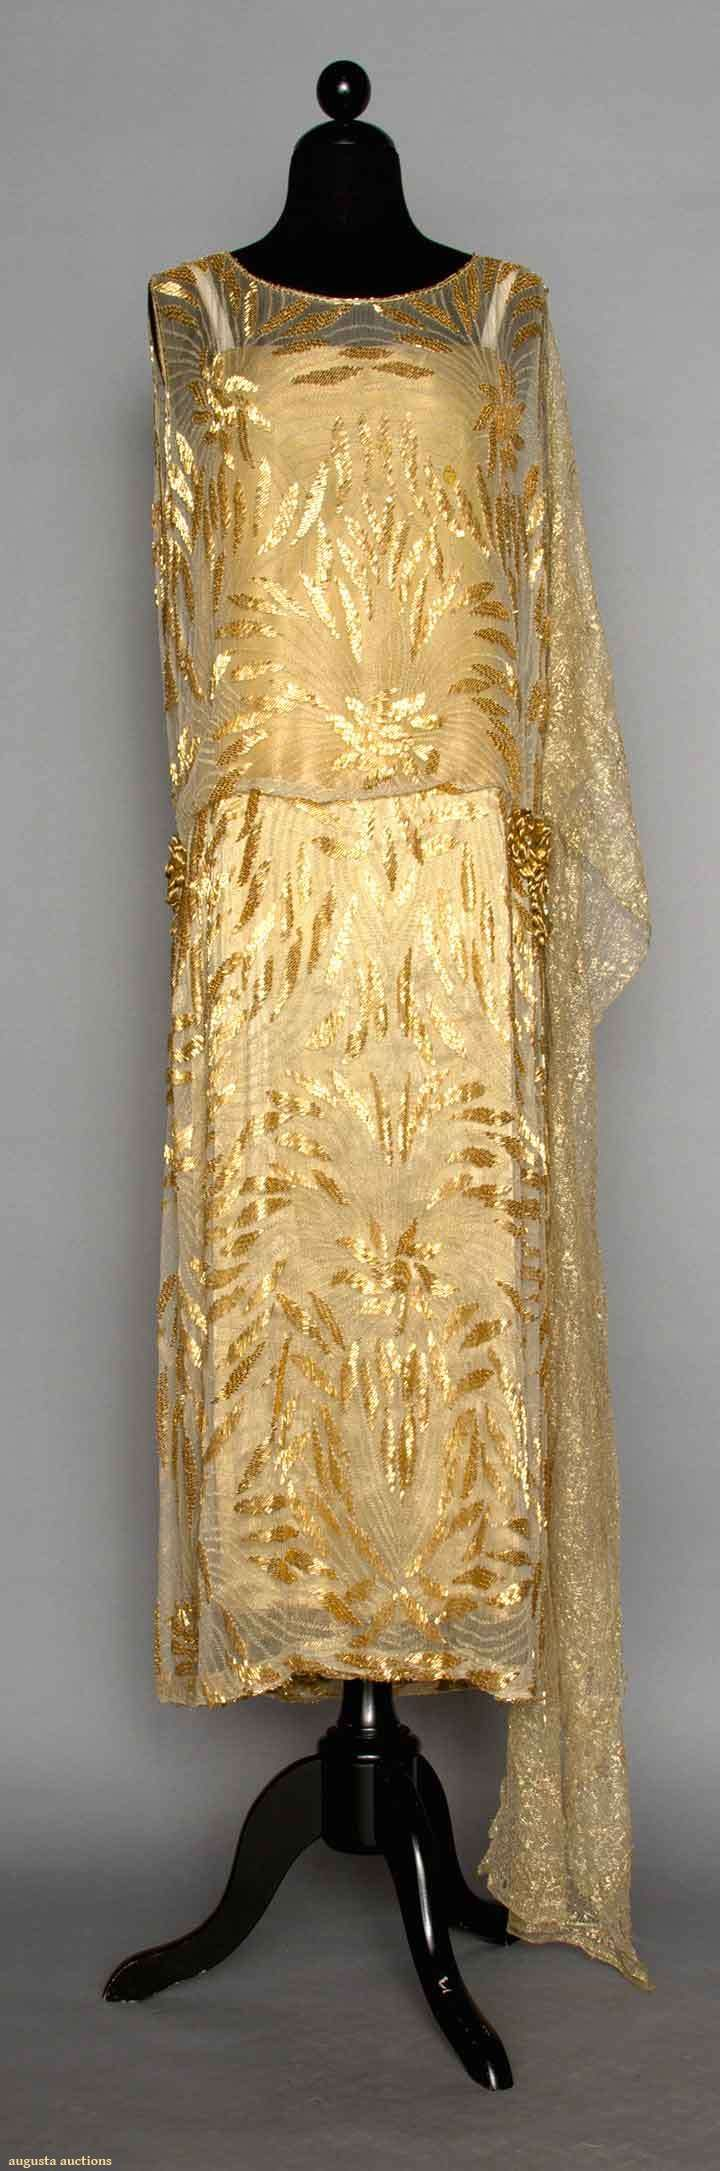 nike air  og Gold Beaded Evening Dress Early   s Augusta Auctions April      NYC